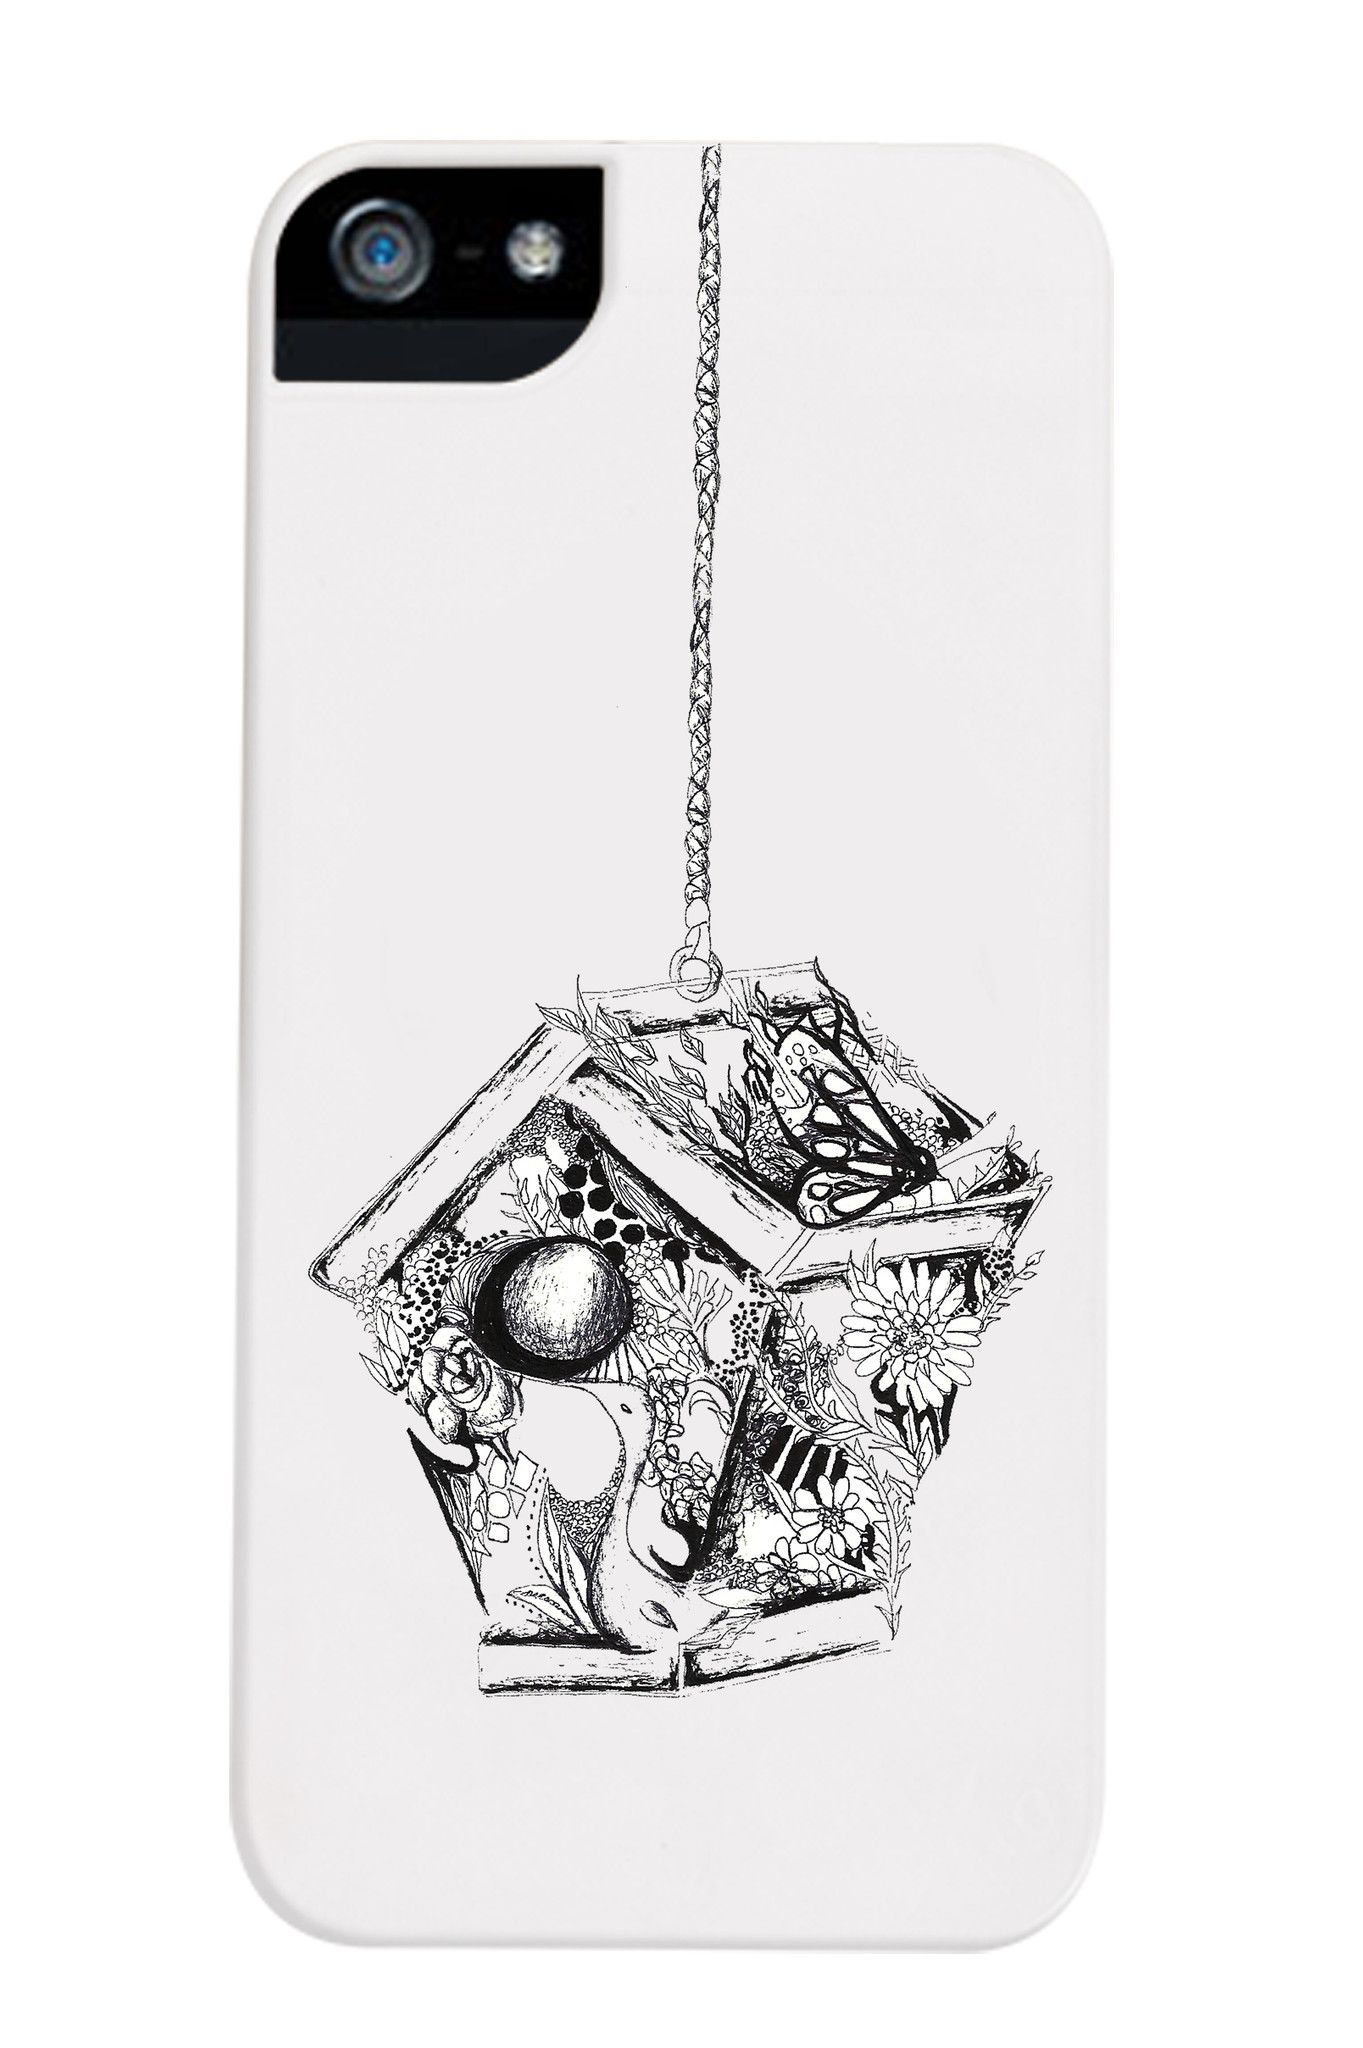 Birdcage Phone Case by Nikita & Vesper. This phone case is for the birds... actually it's super cool. Check it out!  $35